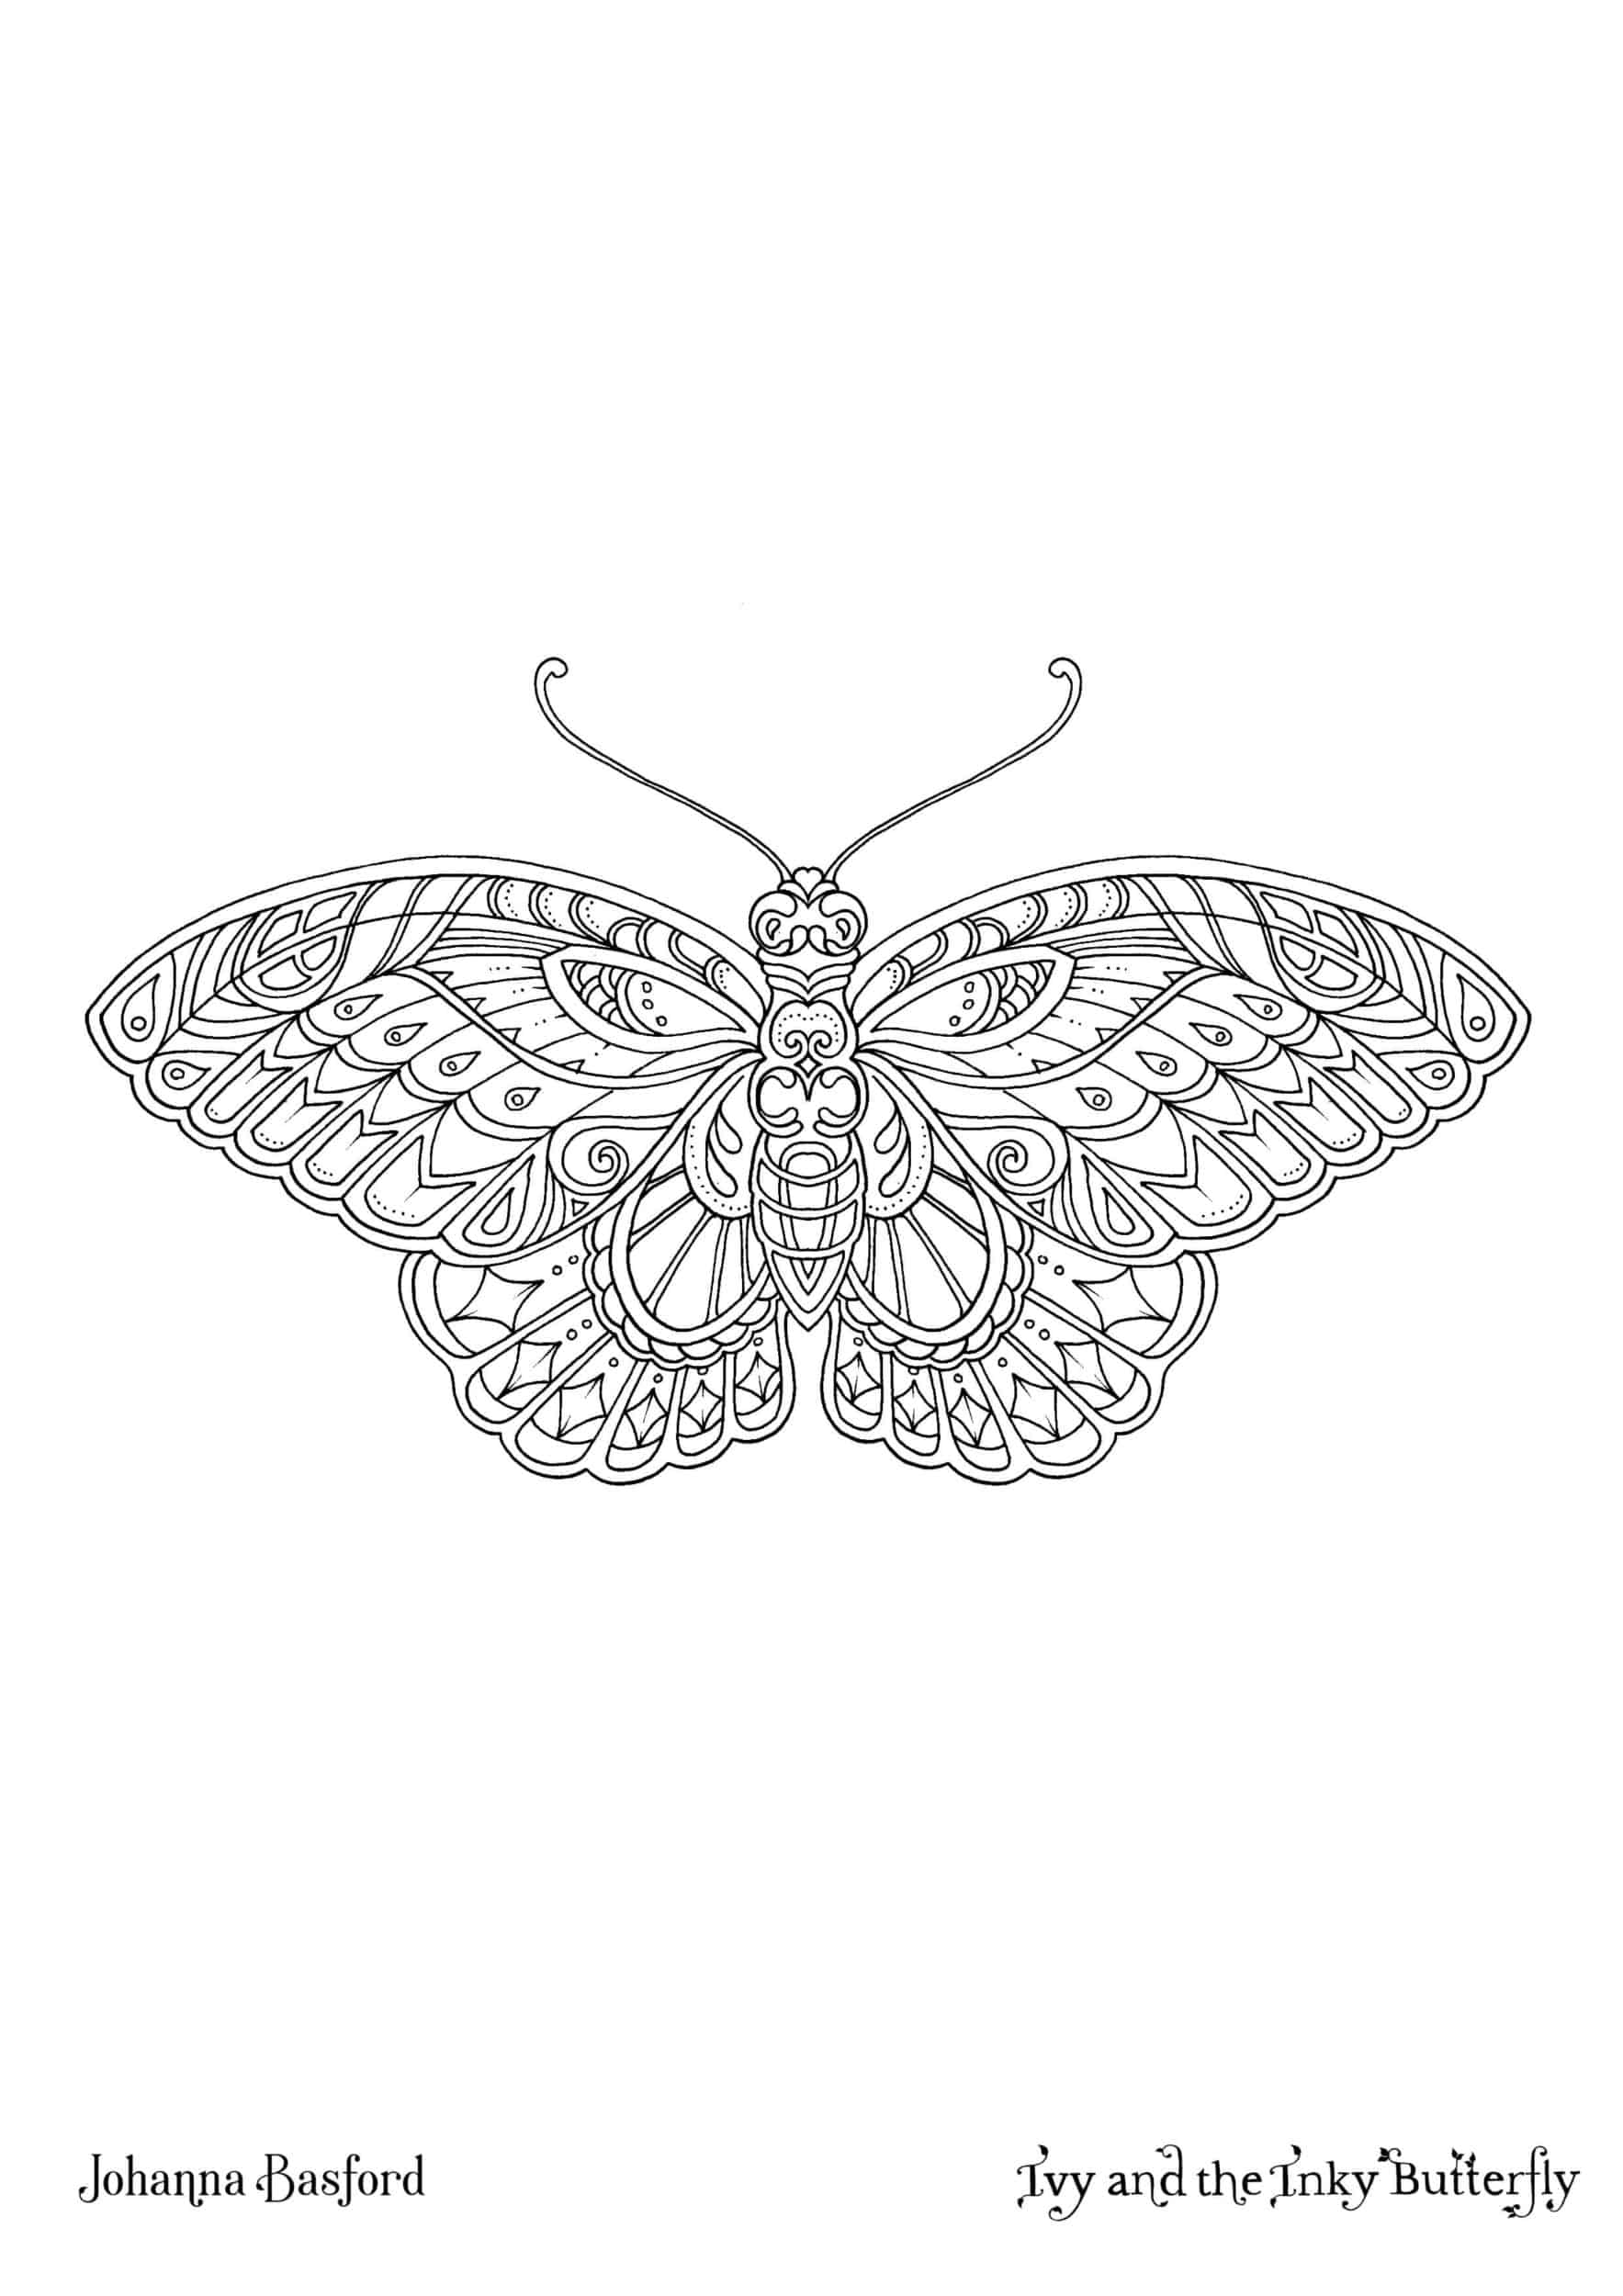 Ivy and the Inky Butterfly : Download and Colouring